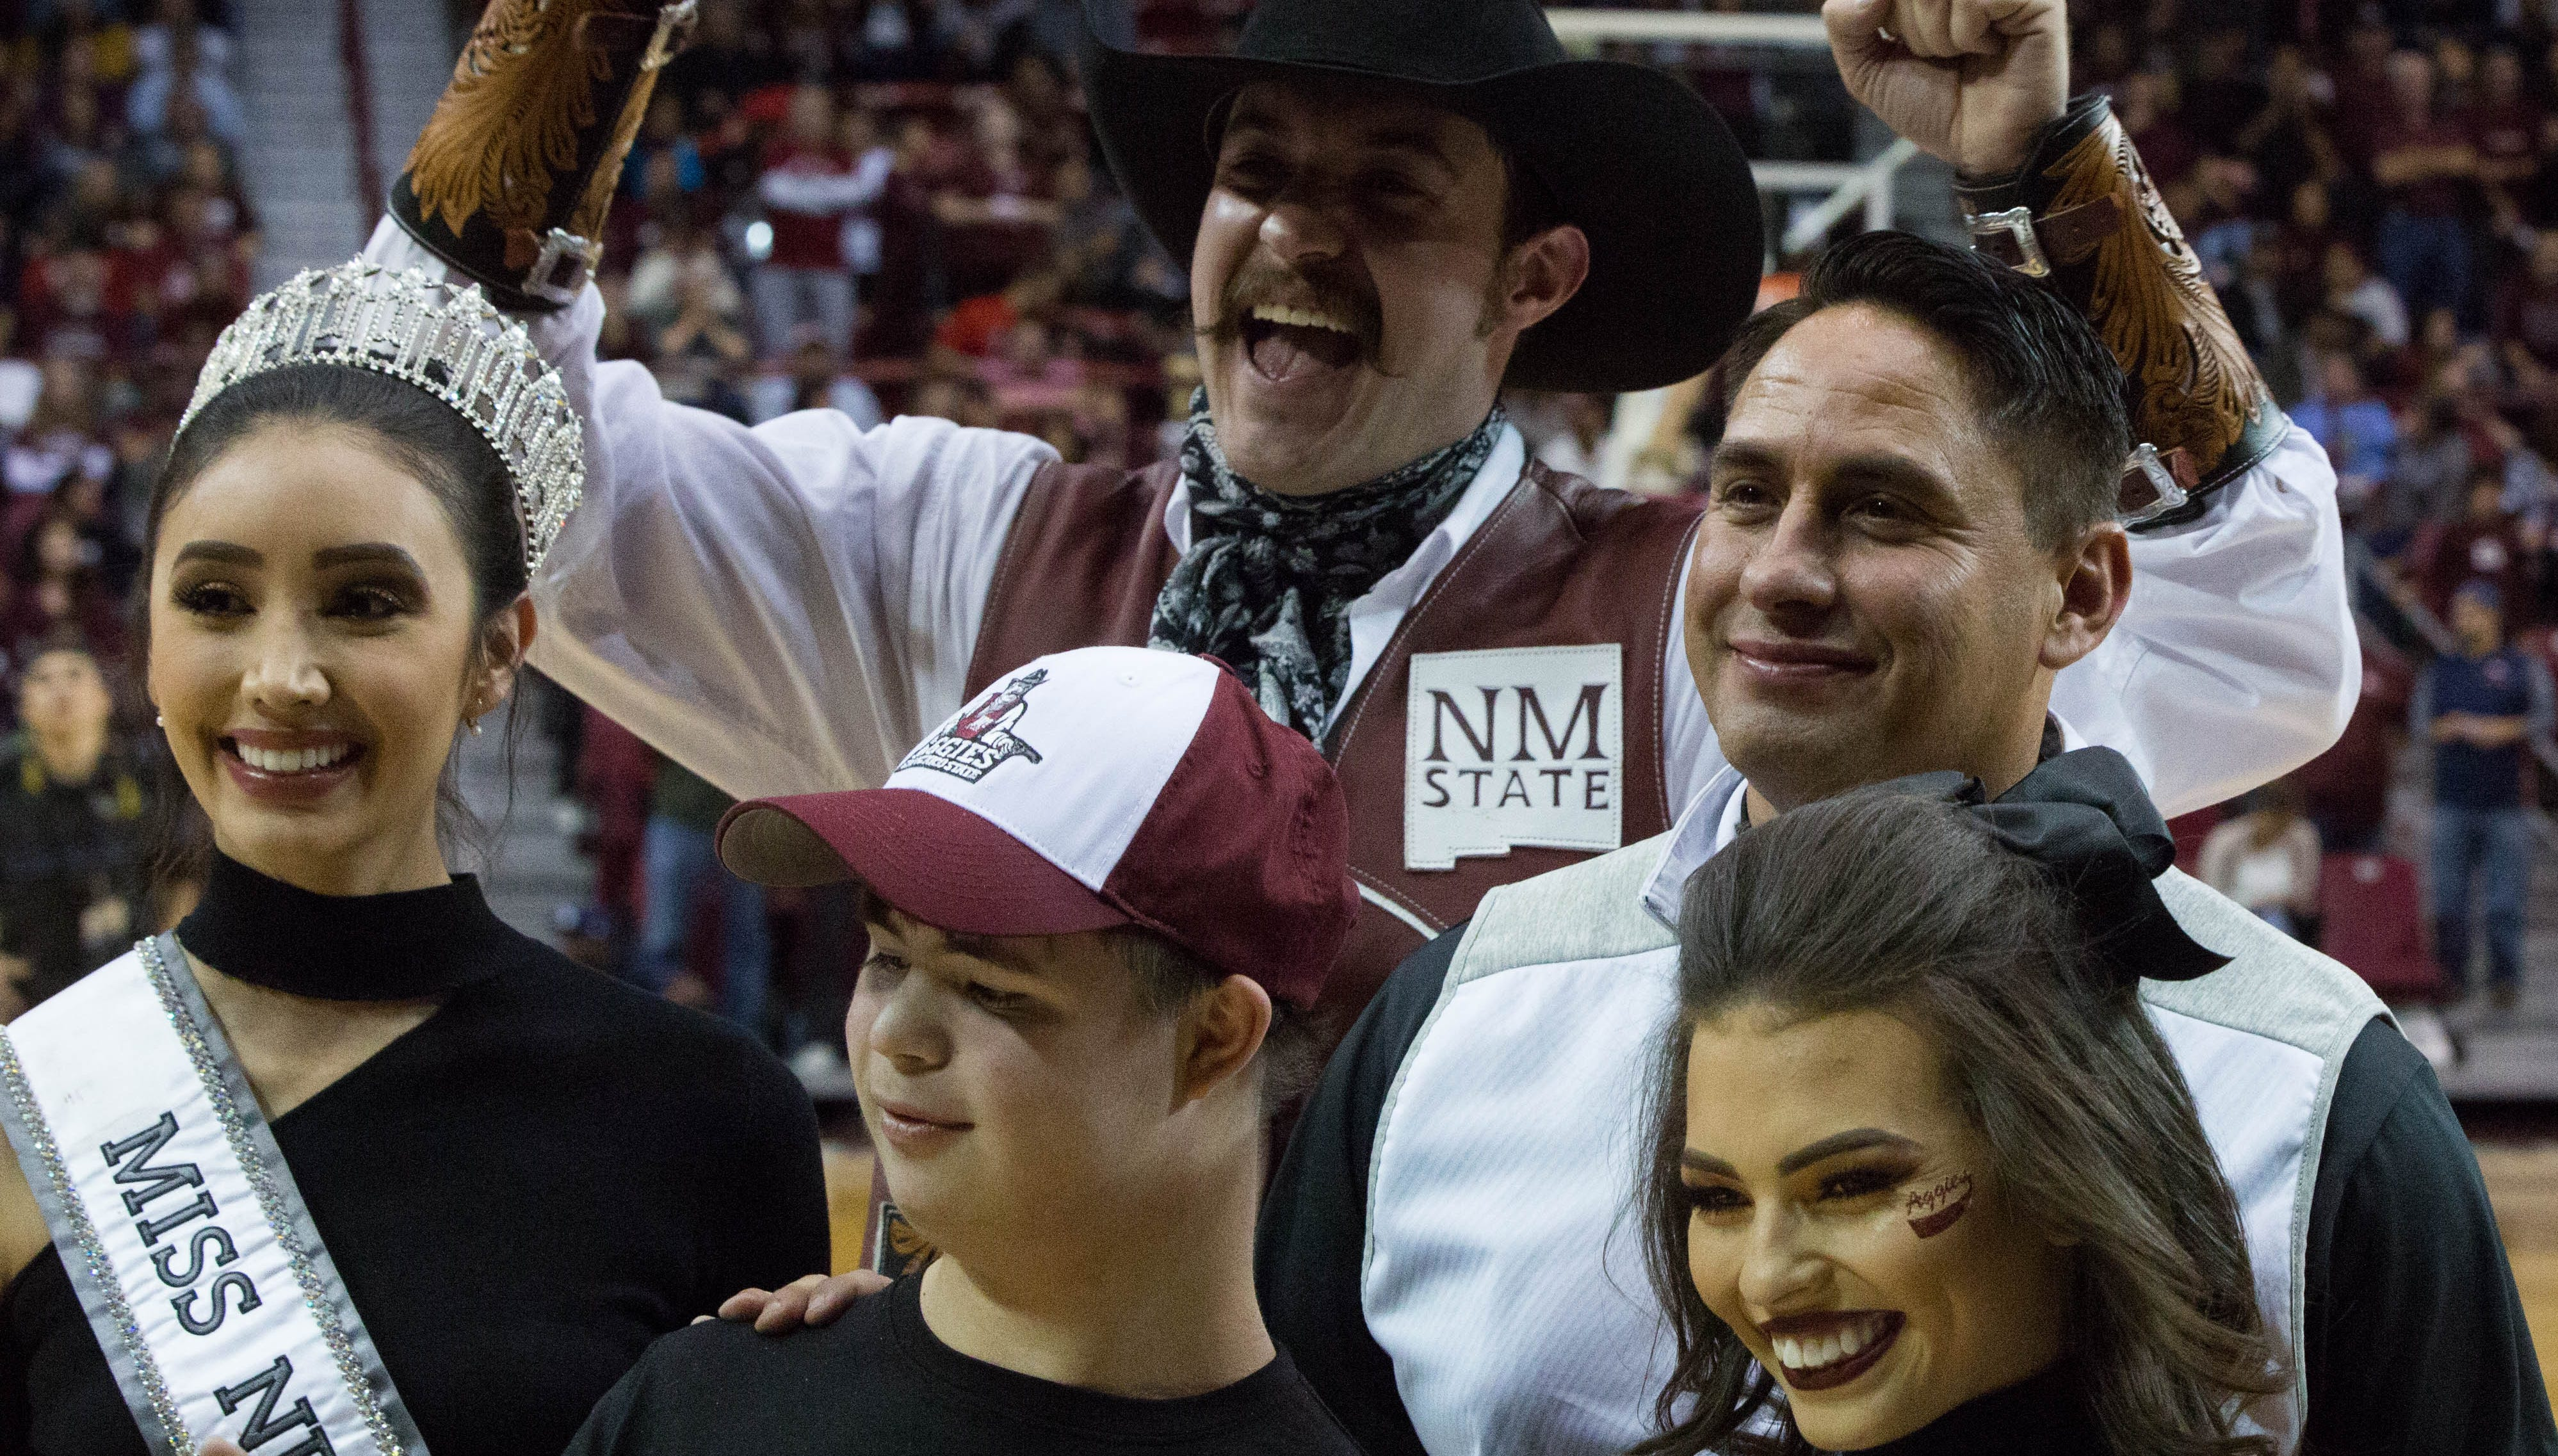 Howie Morales, New Mexico lieutenant governor, right, MAteo Query, 14, center, special olympian and Kristen Leyvay, Miss New Mexico 2018, taking photos and honored during the second half of the NMSU UNM game, Tuesday December 4, 2018. Lt. Governor Morales was honored as a distinguised alumnus and is his first public apperenace as the Lt. Gov. Elect.